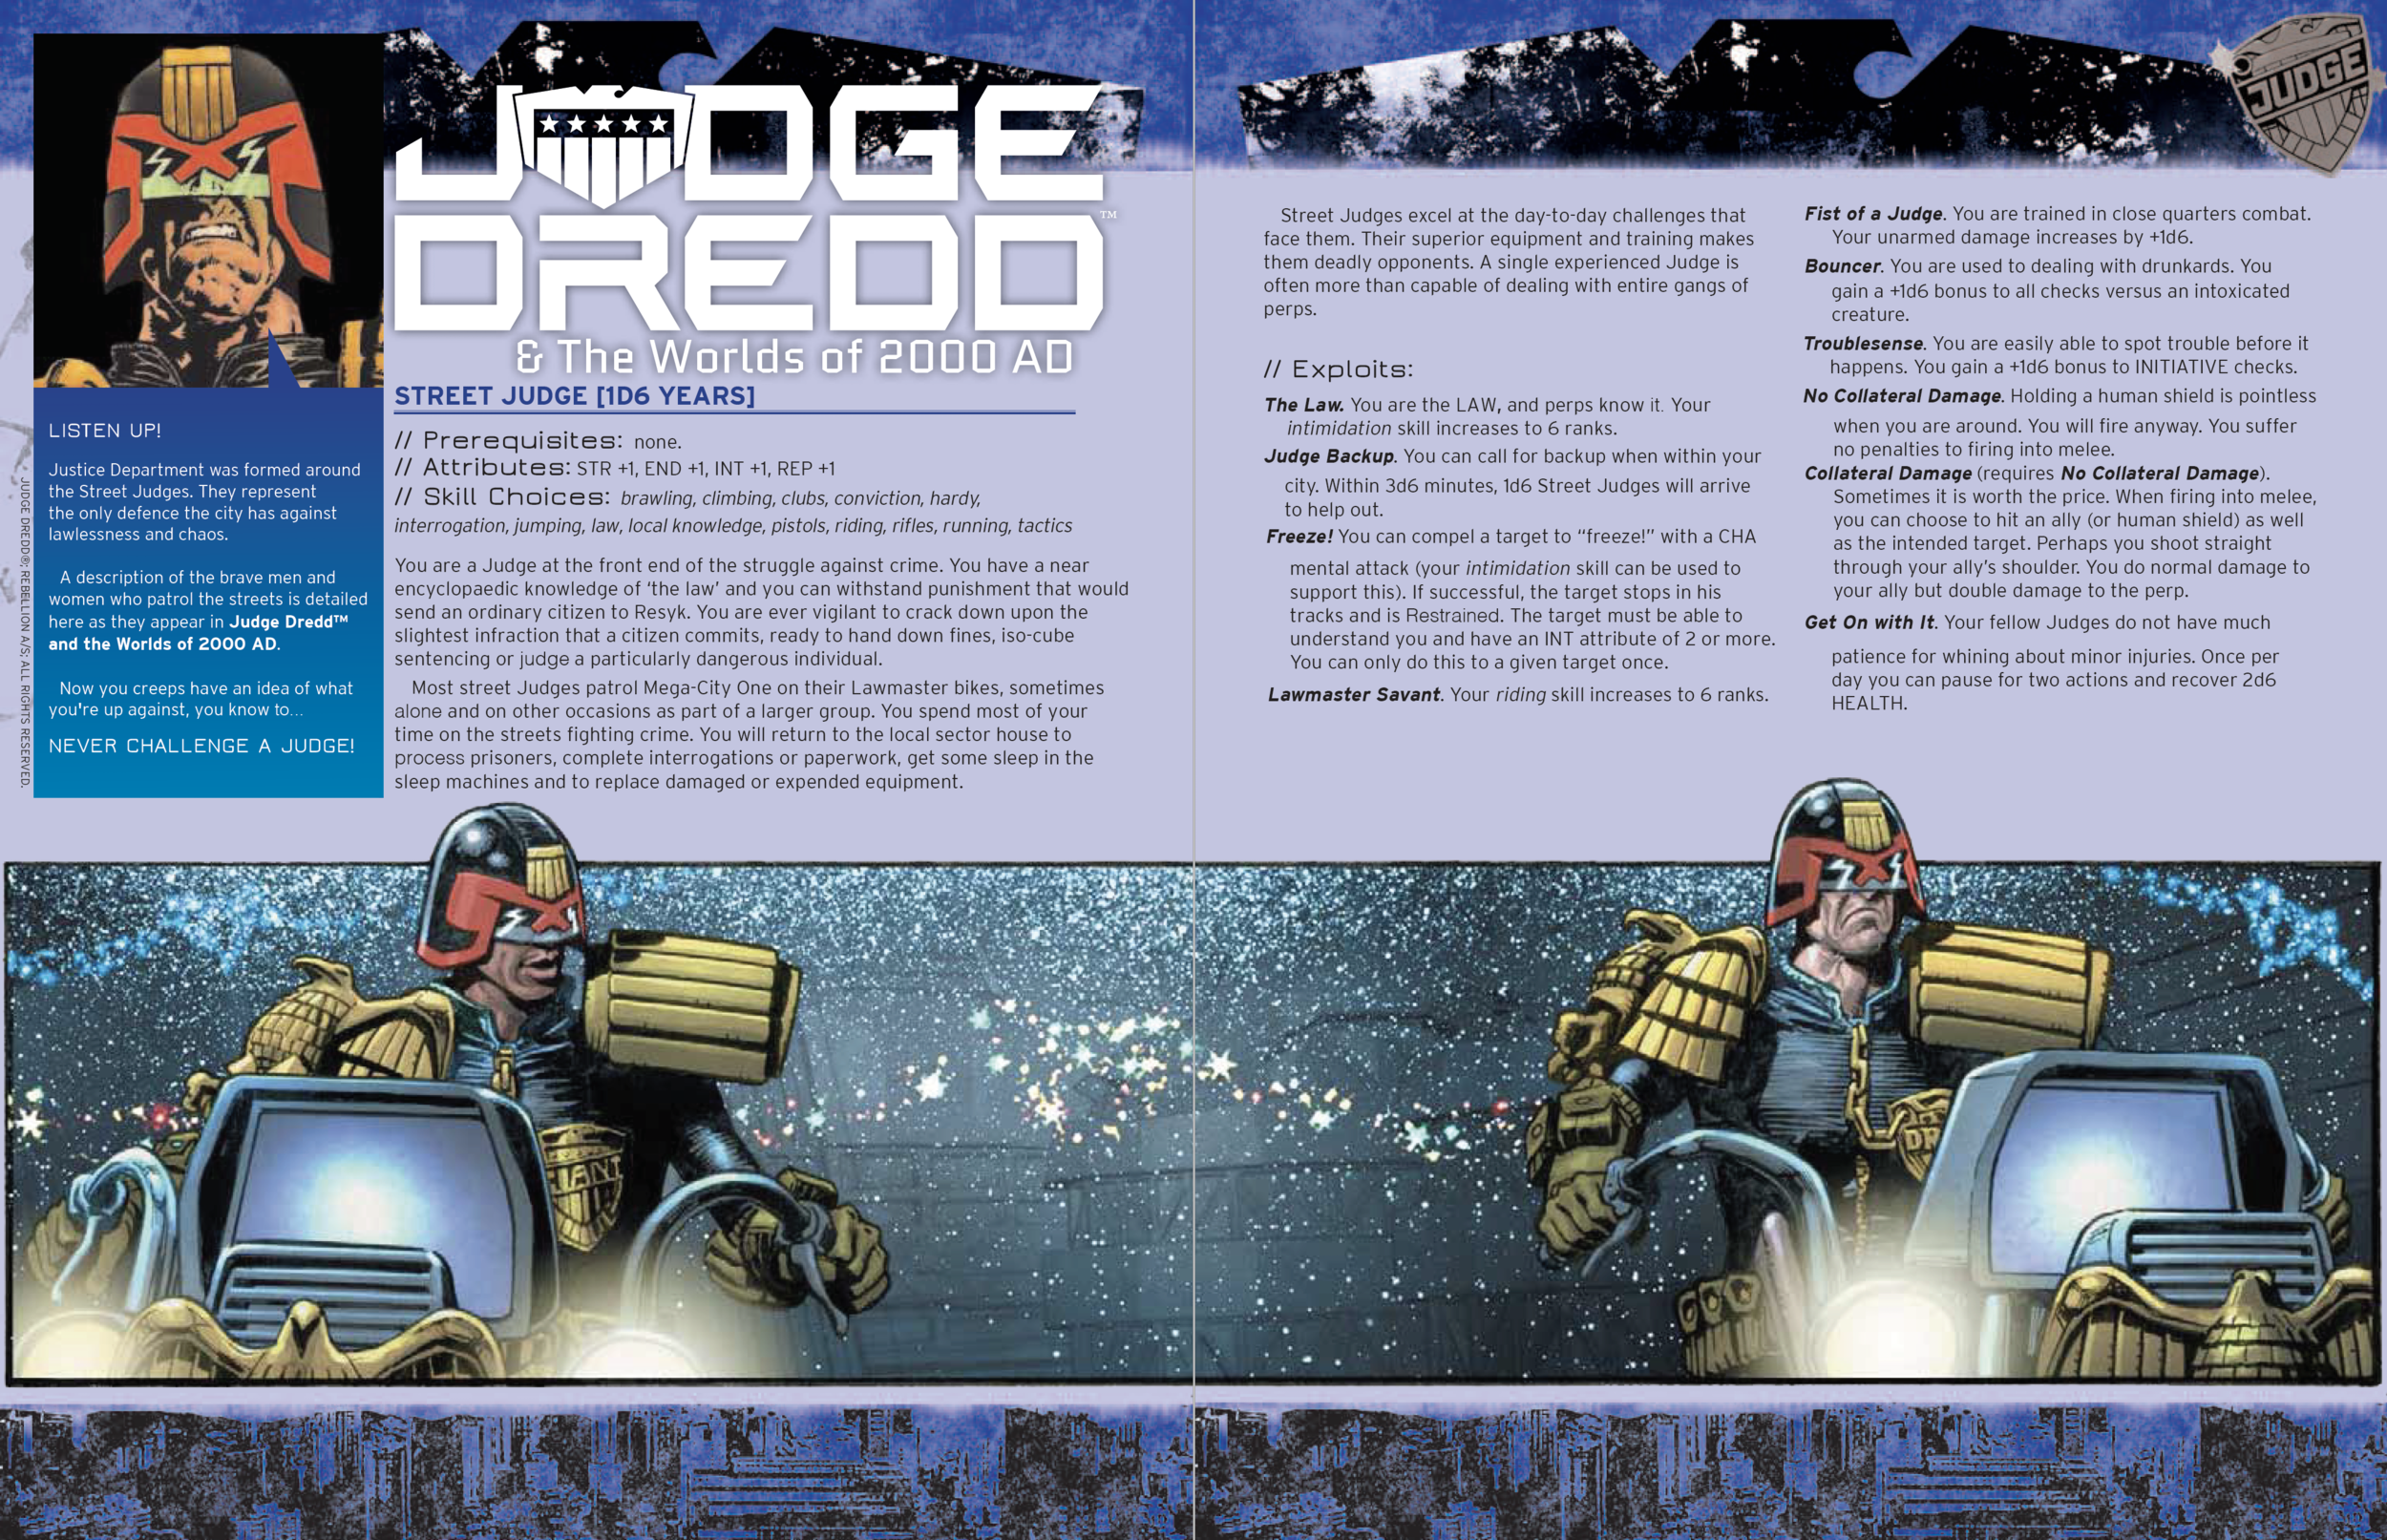 2000ad_promo_2a.png